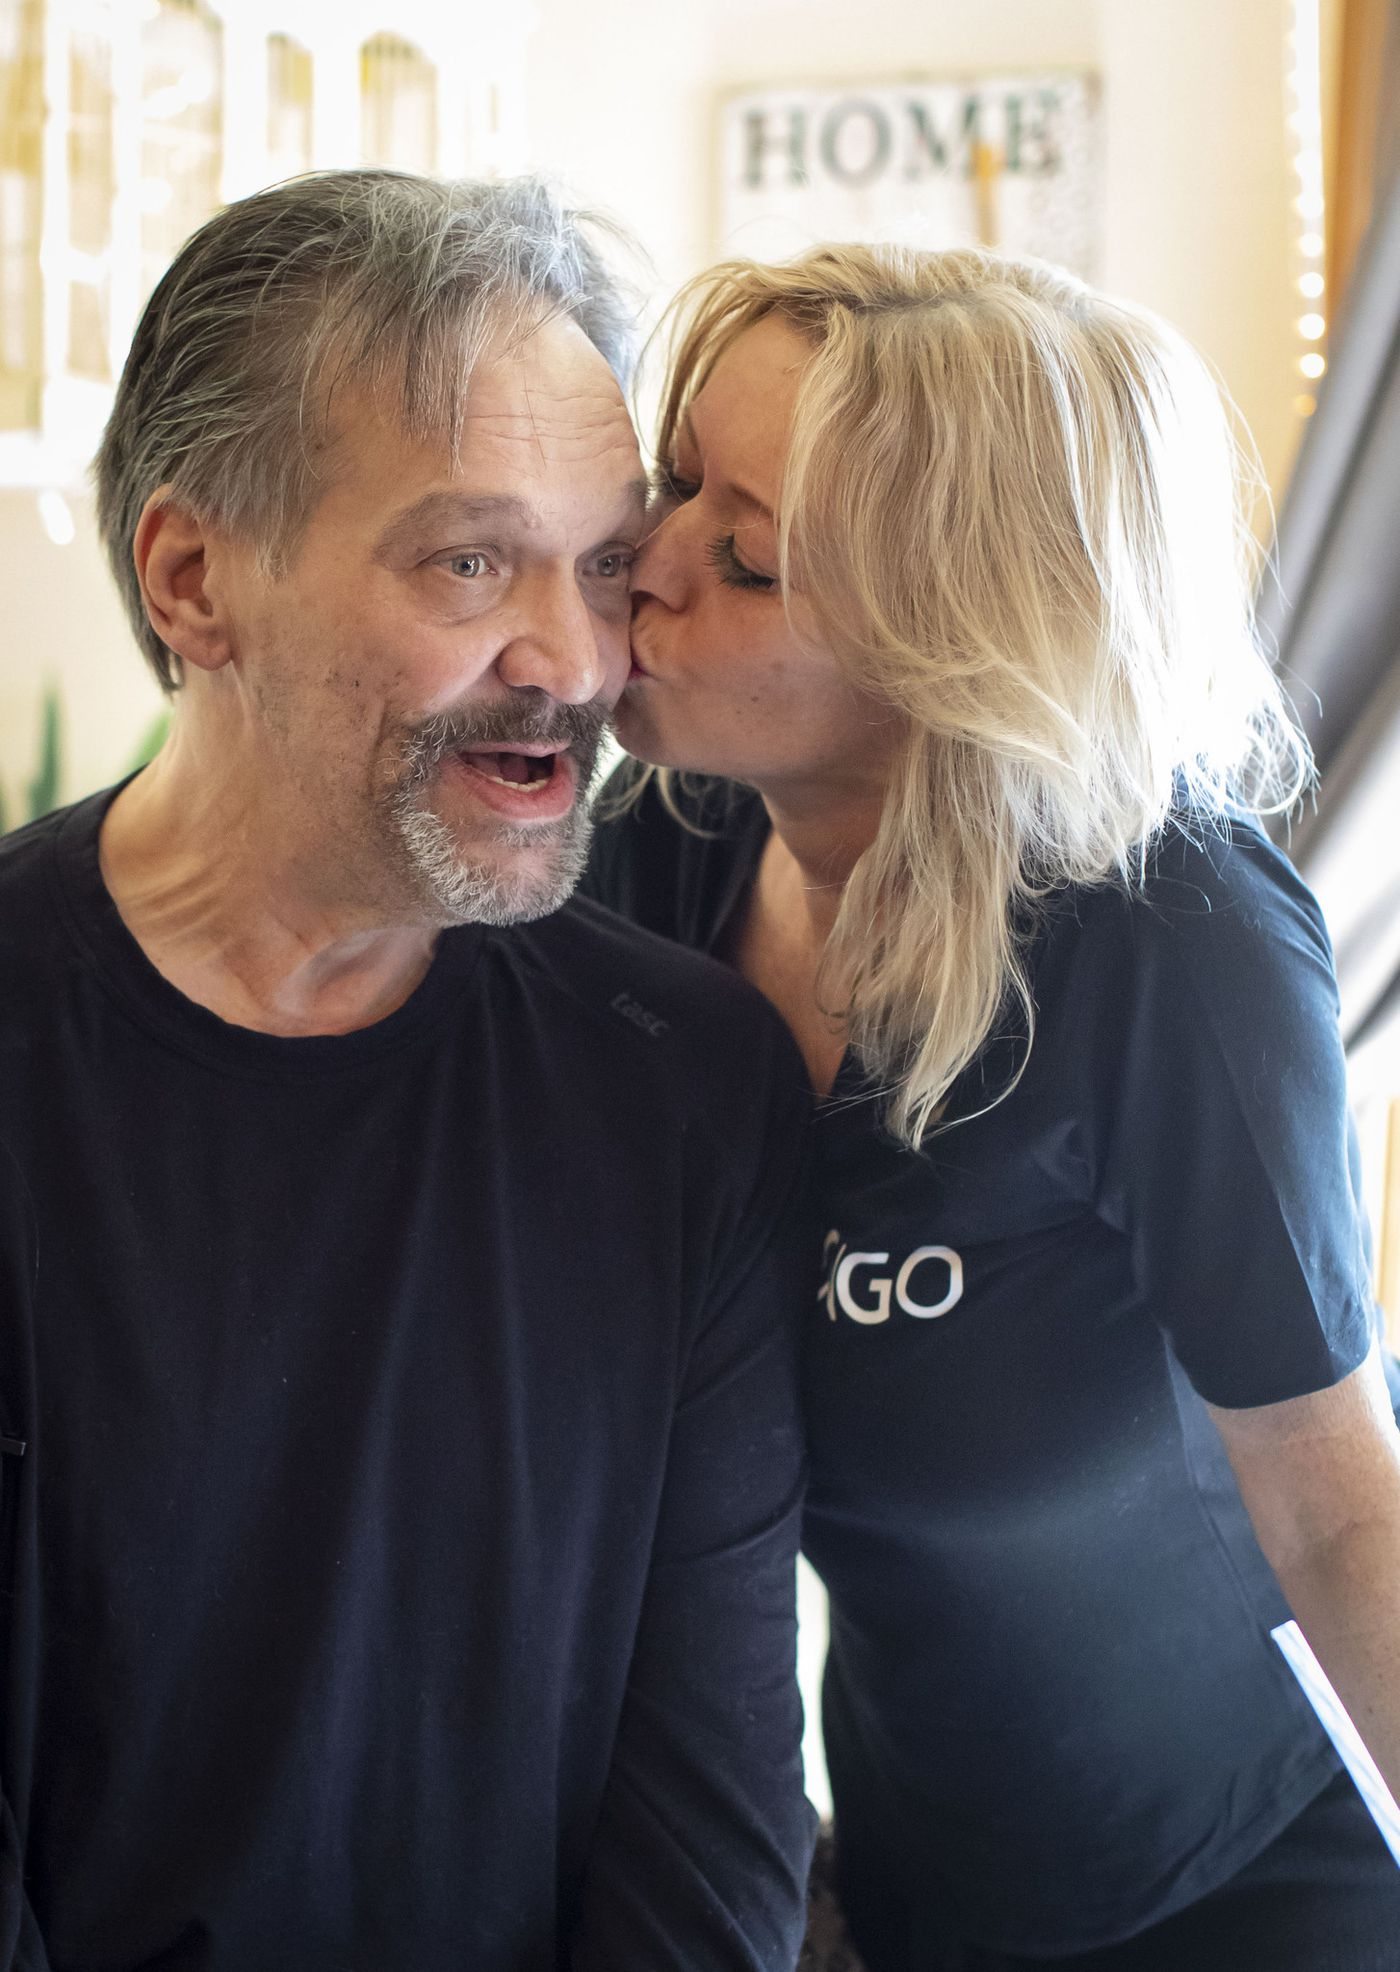 Former Chicago Bears player Steve McMichael gets a kiss from his wife Misty on April 22, 2021 at their Romeoville home.